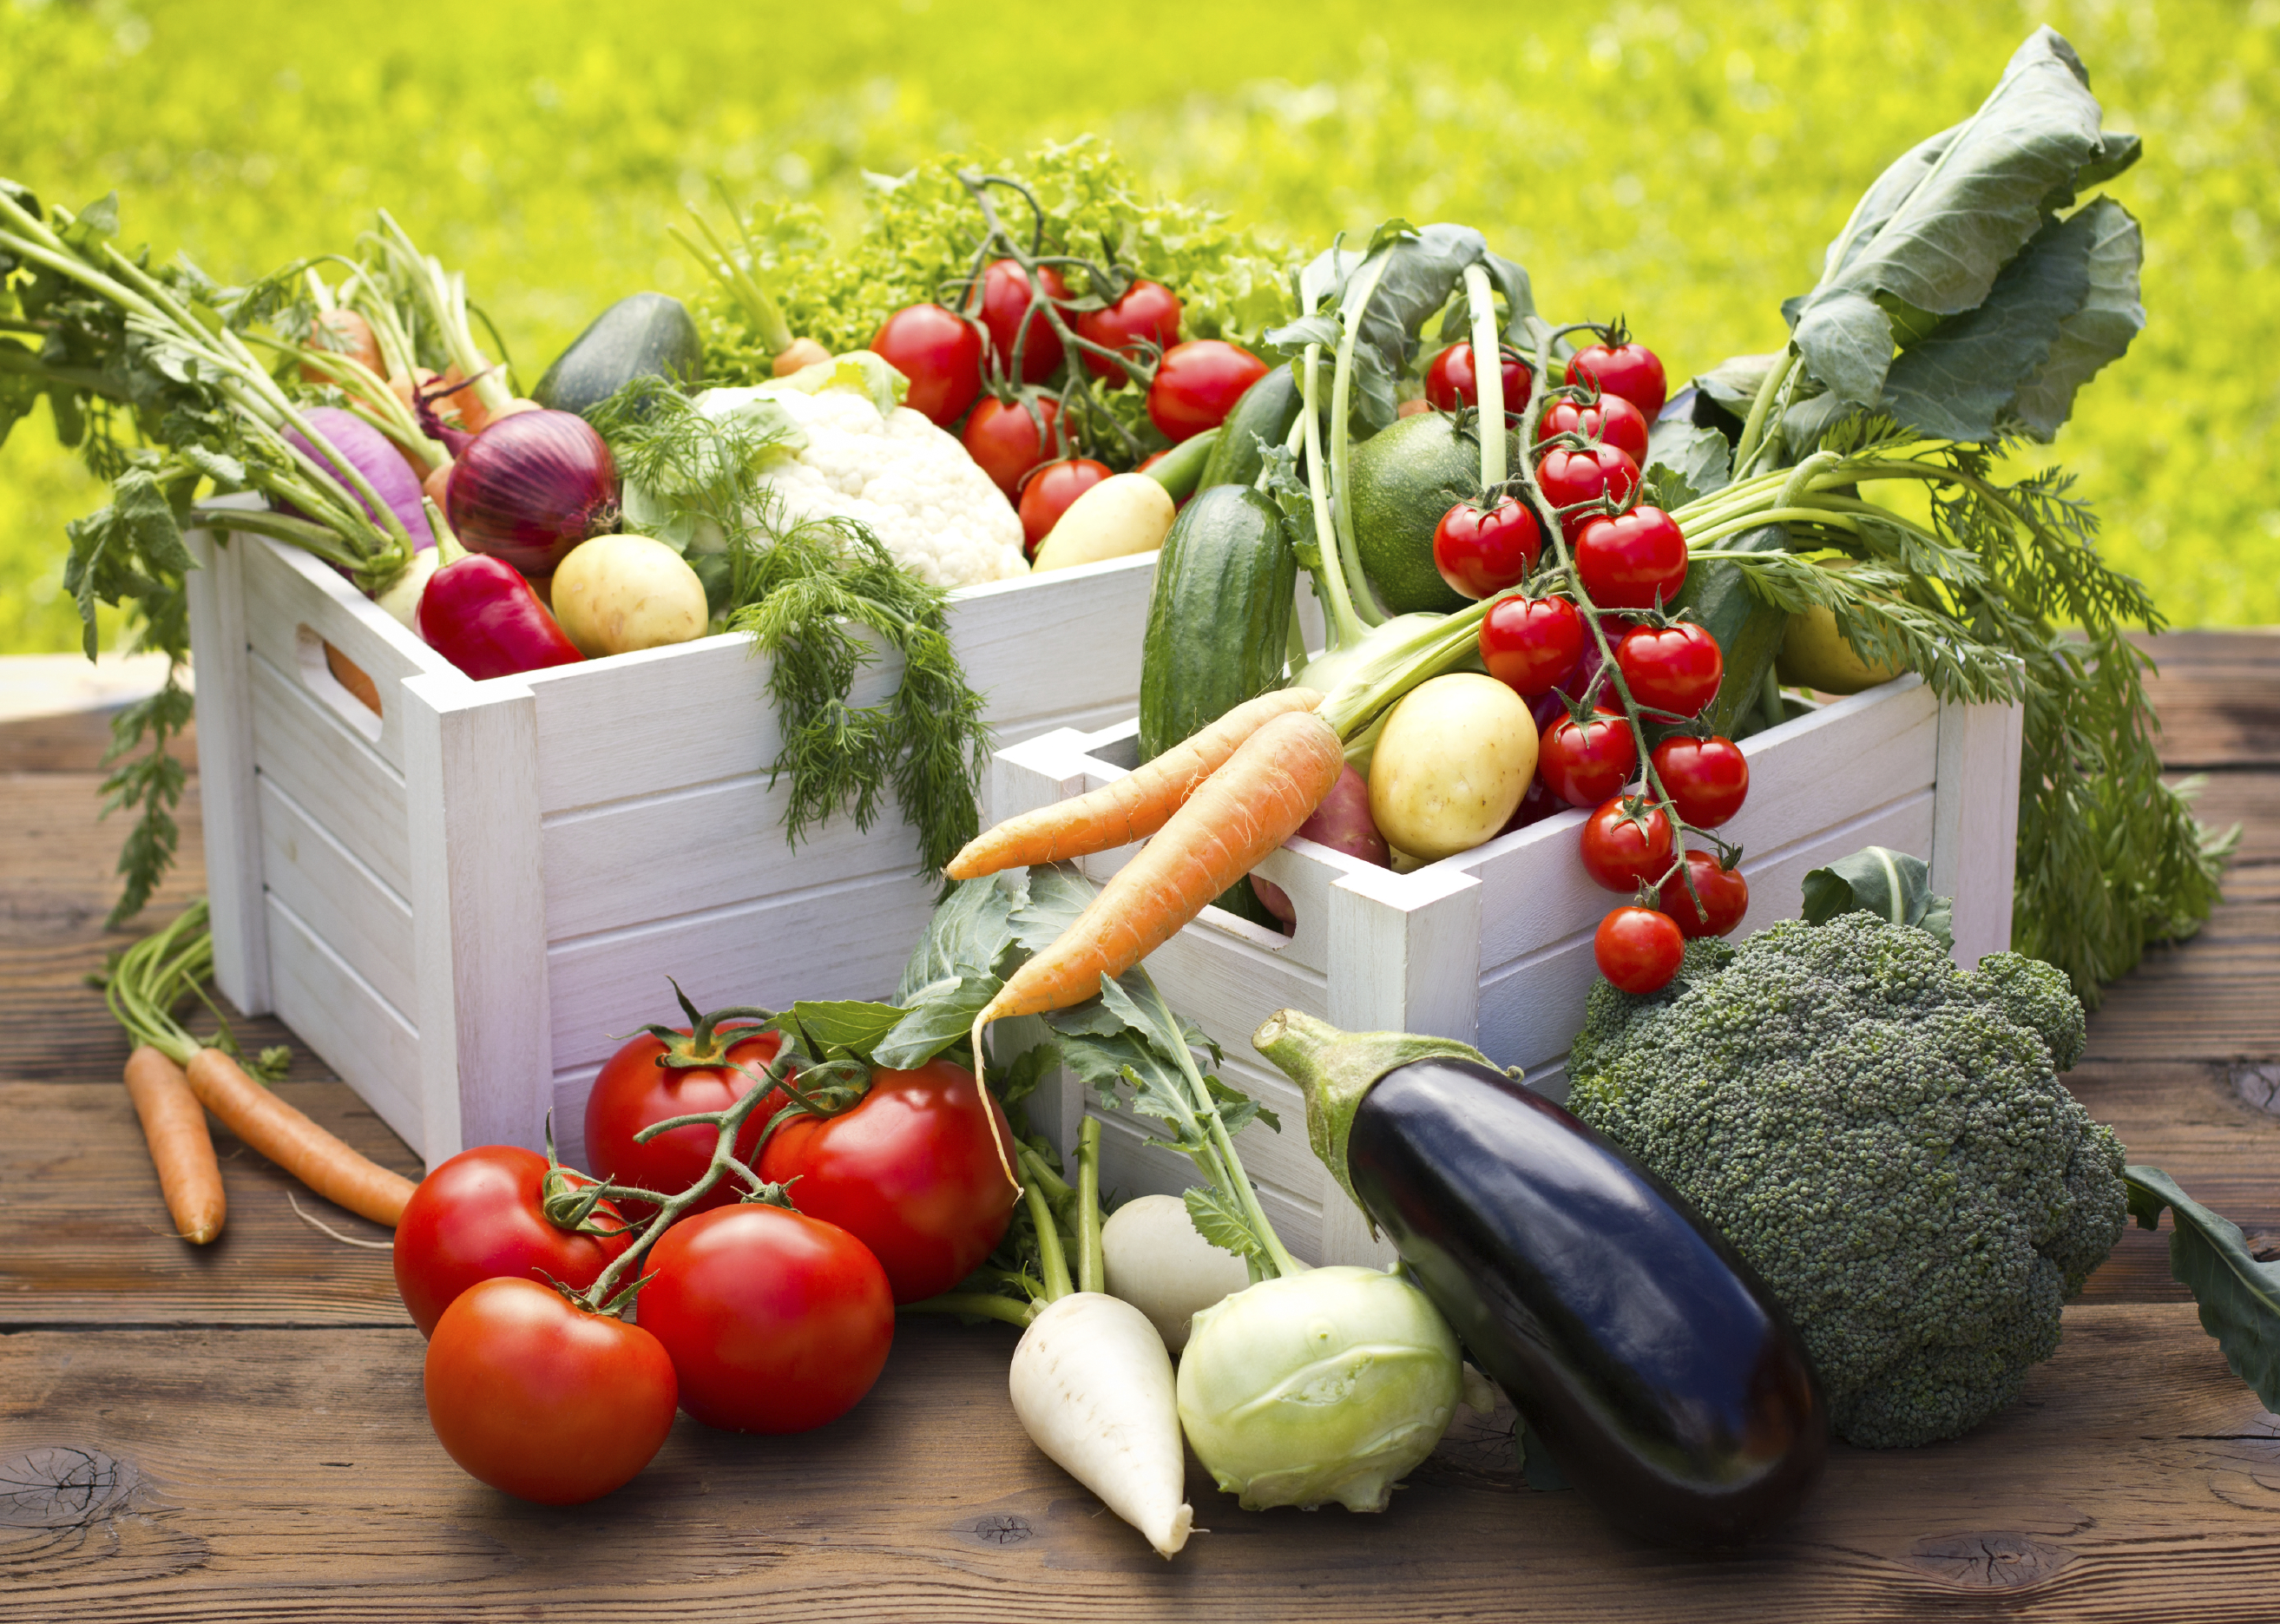 If You Donu0027t Have A Garden, Or Want More Variety A CSA (Community Supported  Agriculture) Box Is A Great Idea!